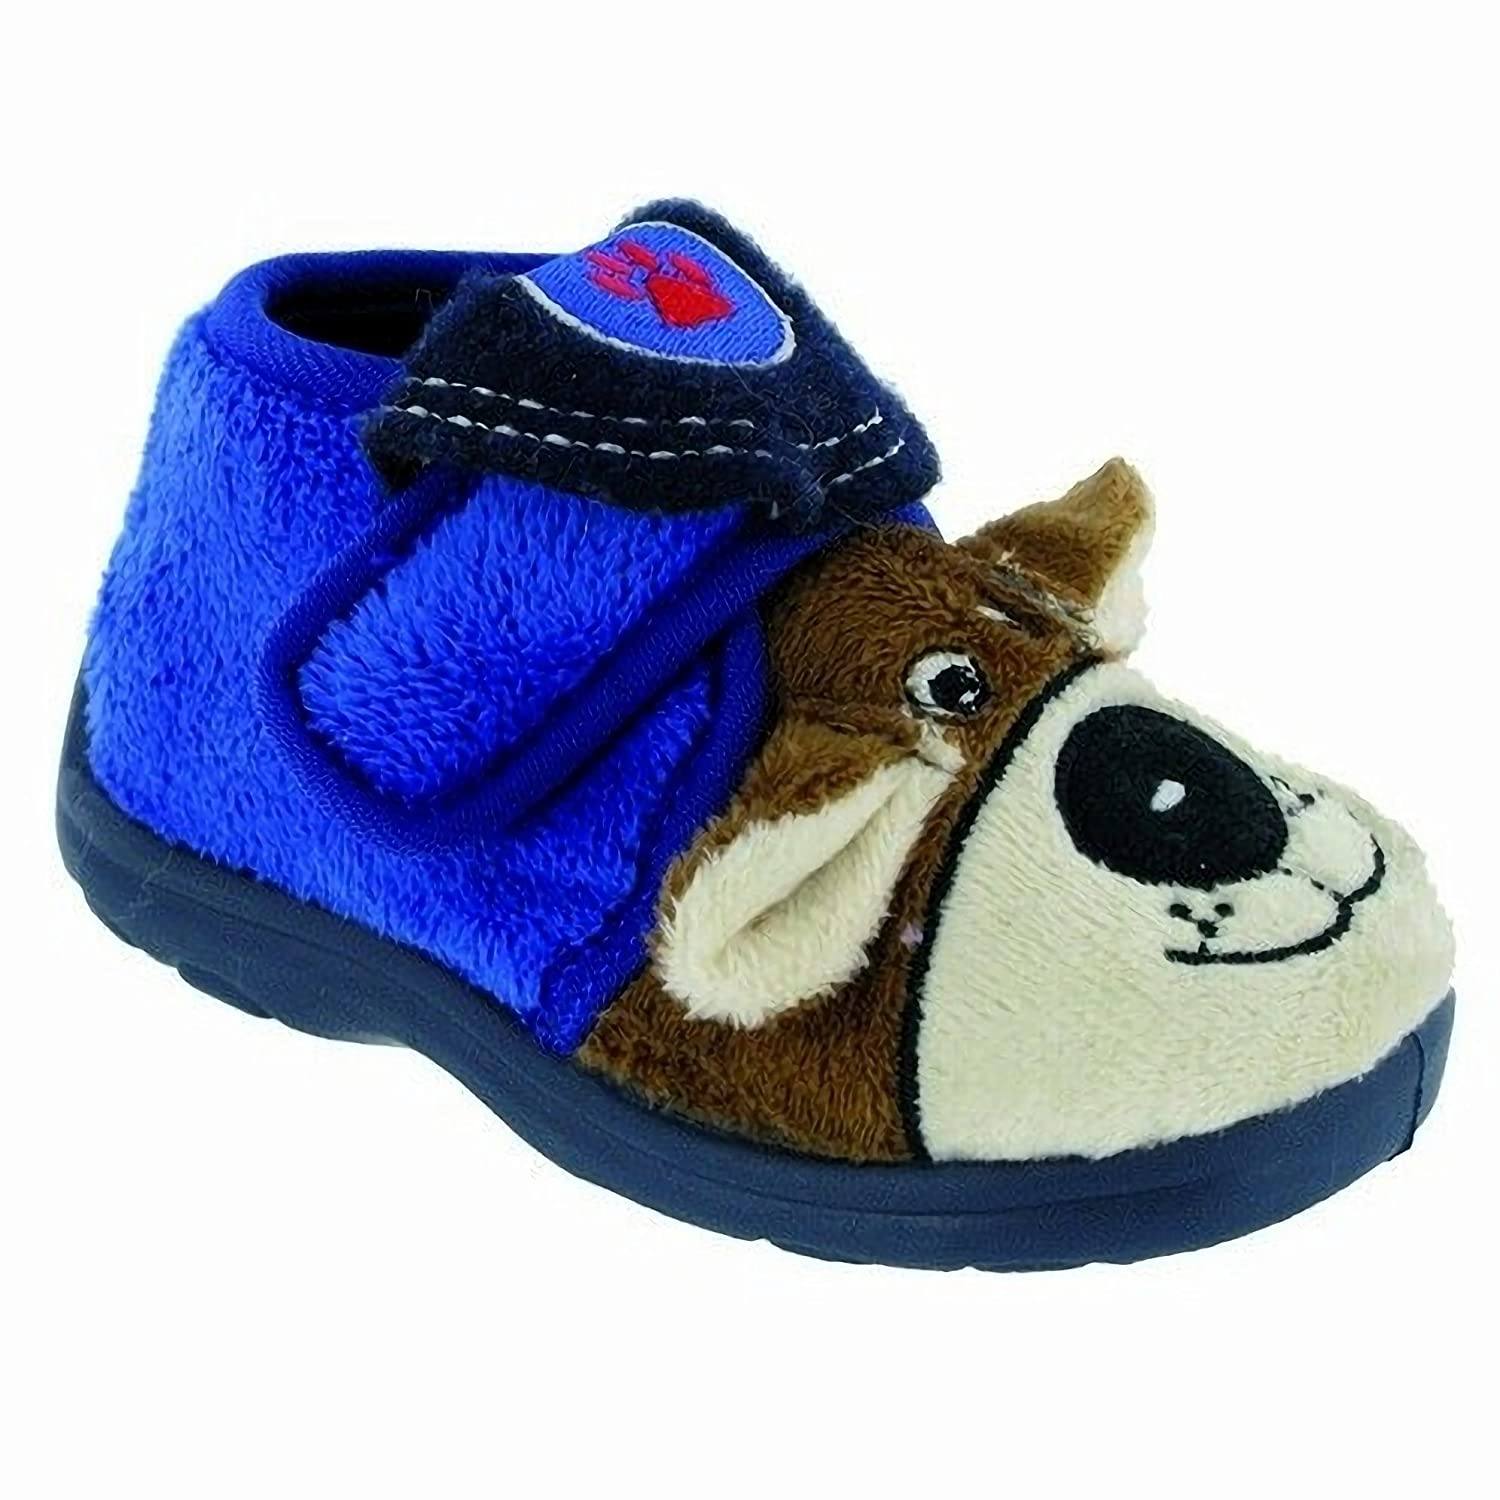 Mirak Bungle Childrens Touch Fastening Slipper/Boys Slippers/Childrens Slippers